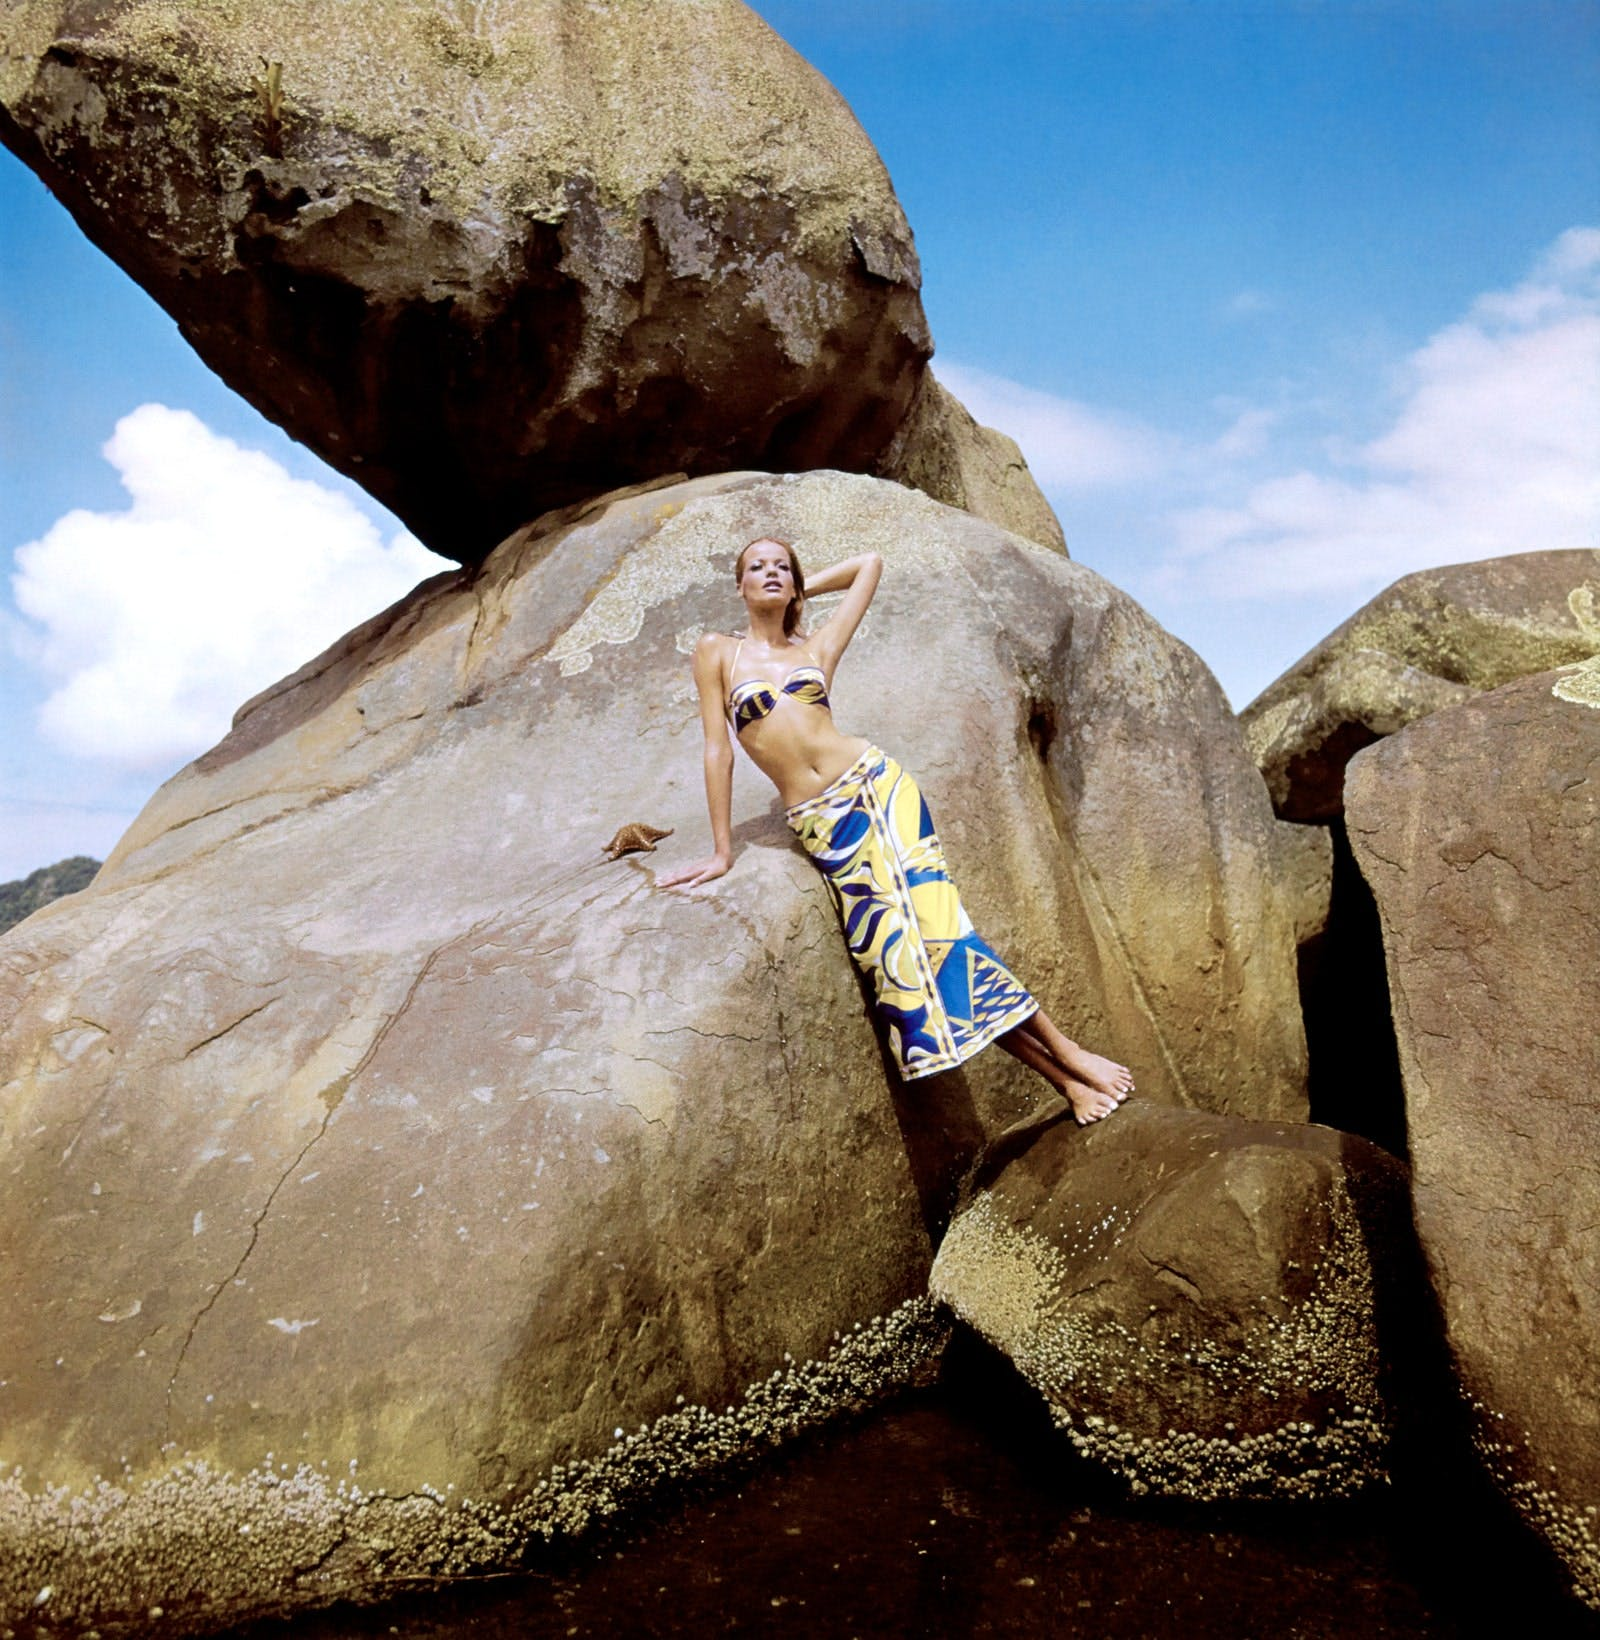 Veruschka in an Emilio Pucci top and sarong in Angra dos Reis, Brazil. Photographed by Henry Clarke, Vogue, June 1965.